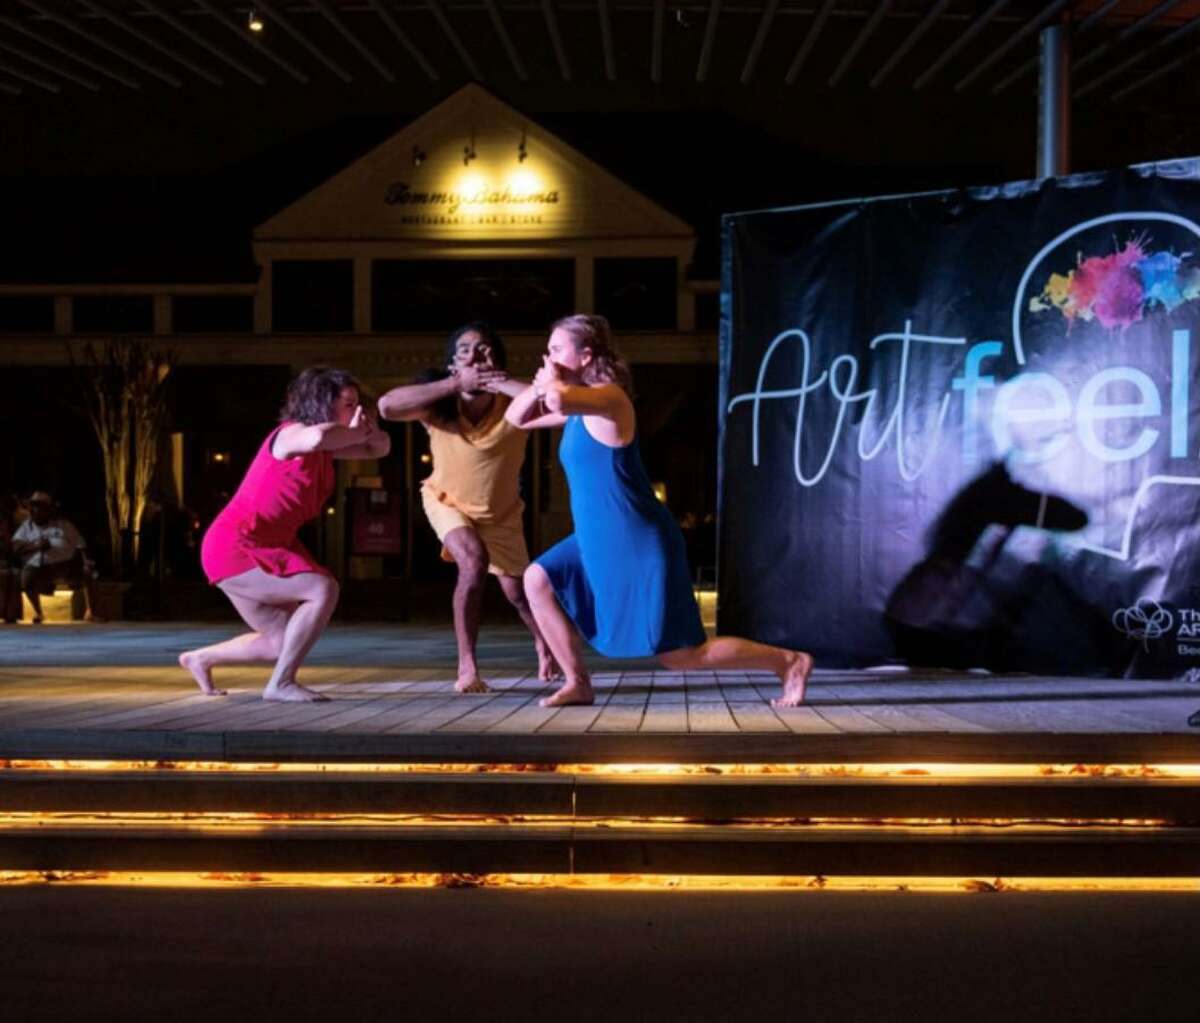 Artfeel, the performance art night of whimsy, returns to live action on June 30 at Market Street in The Woodlands. About 100 people attended the March 10 event which featured 10 performers doing dance, spoken word and music.